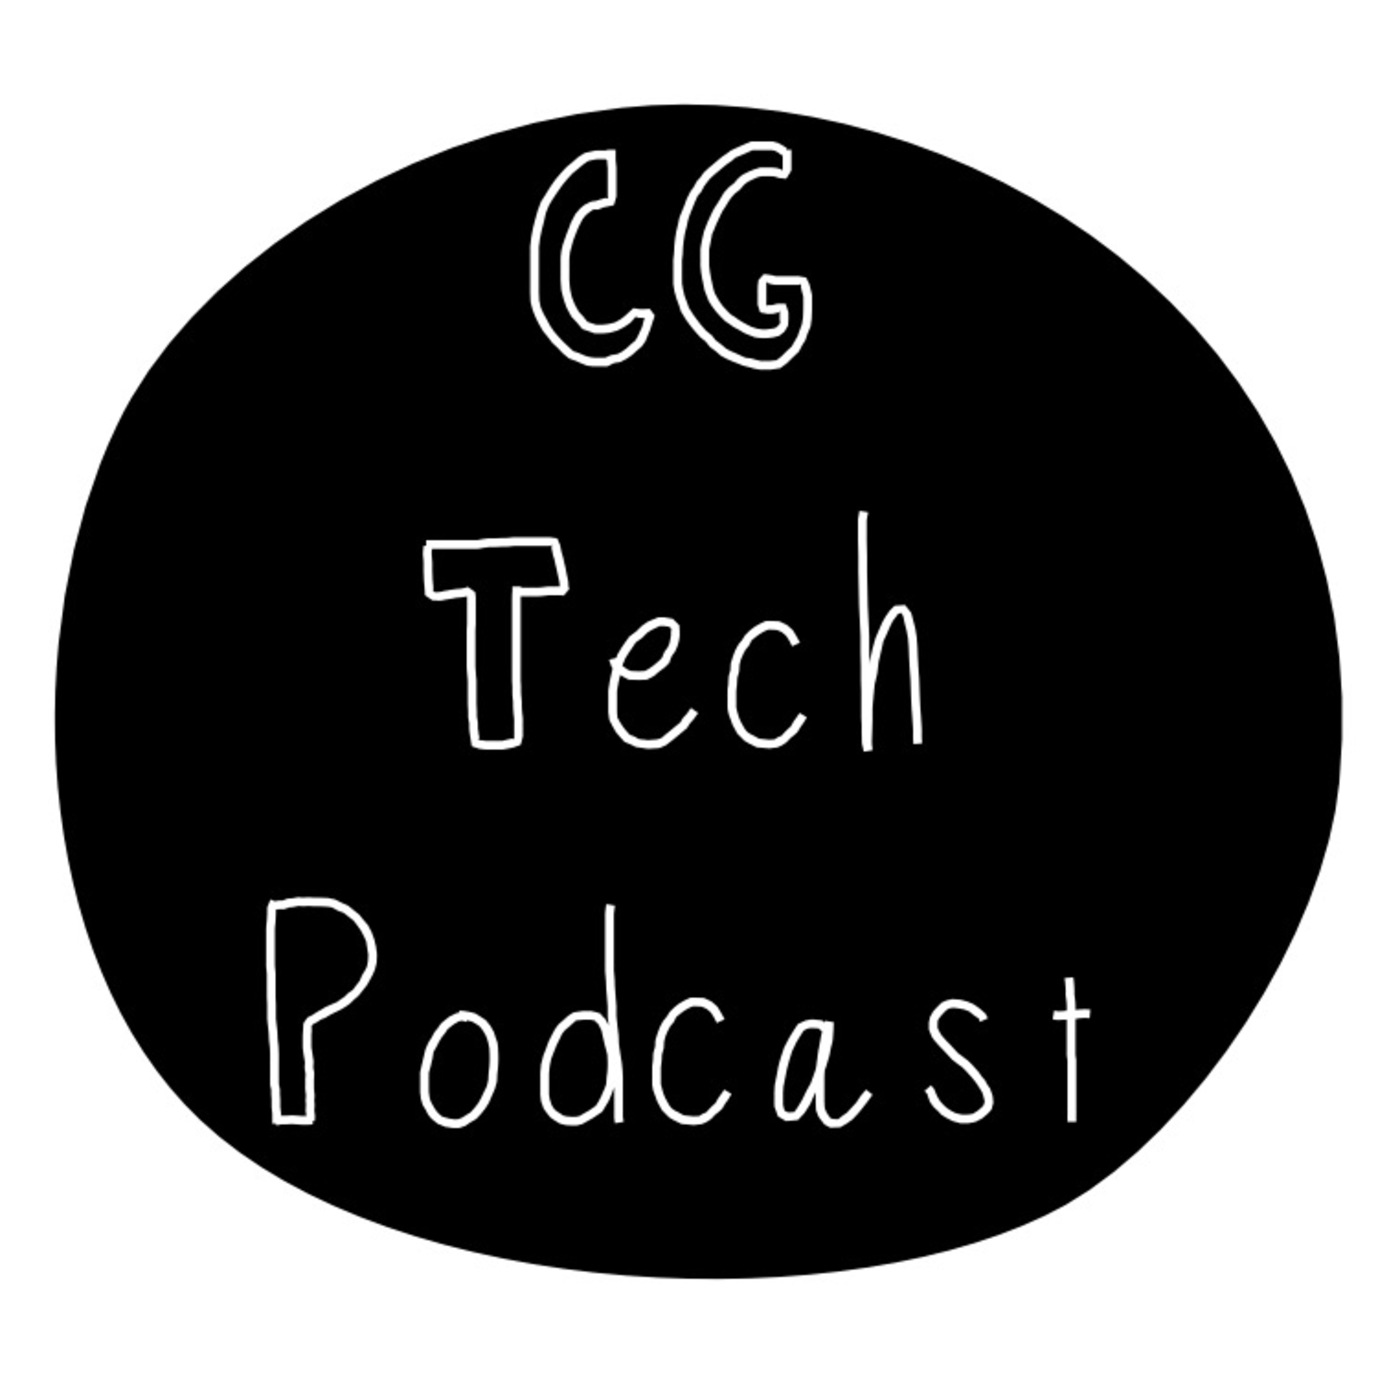 CG Tech Podcast